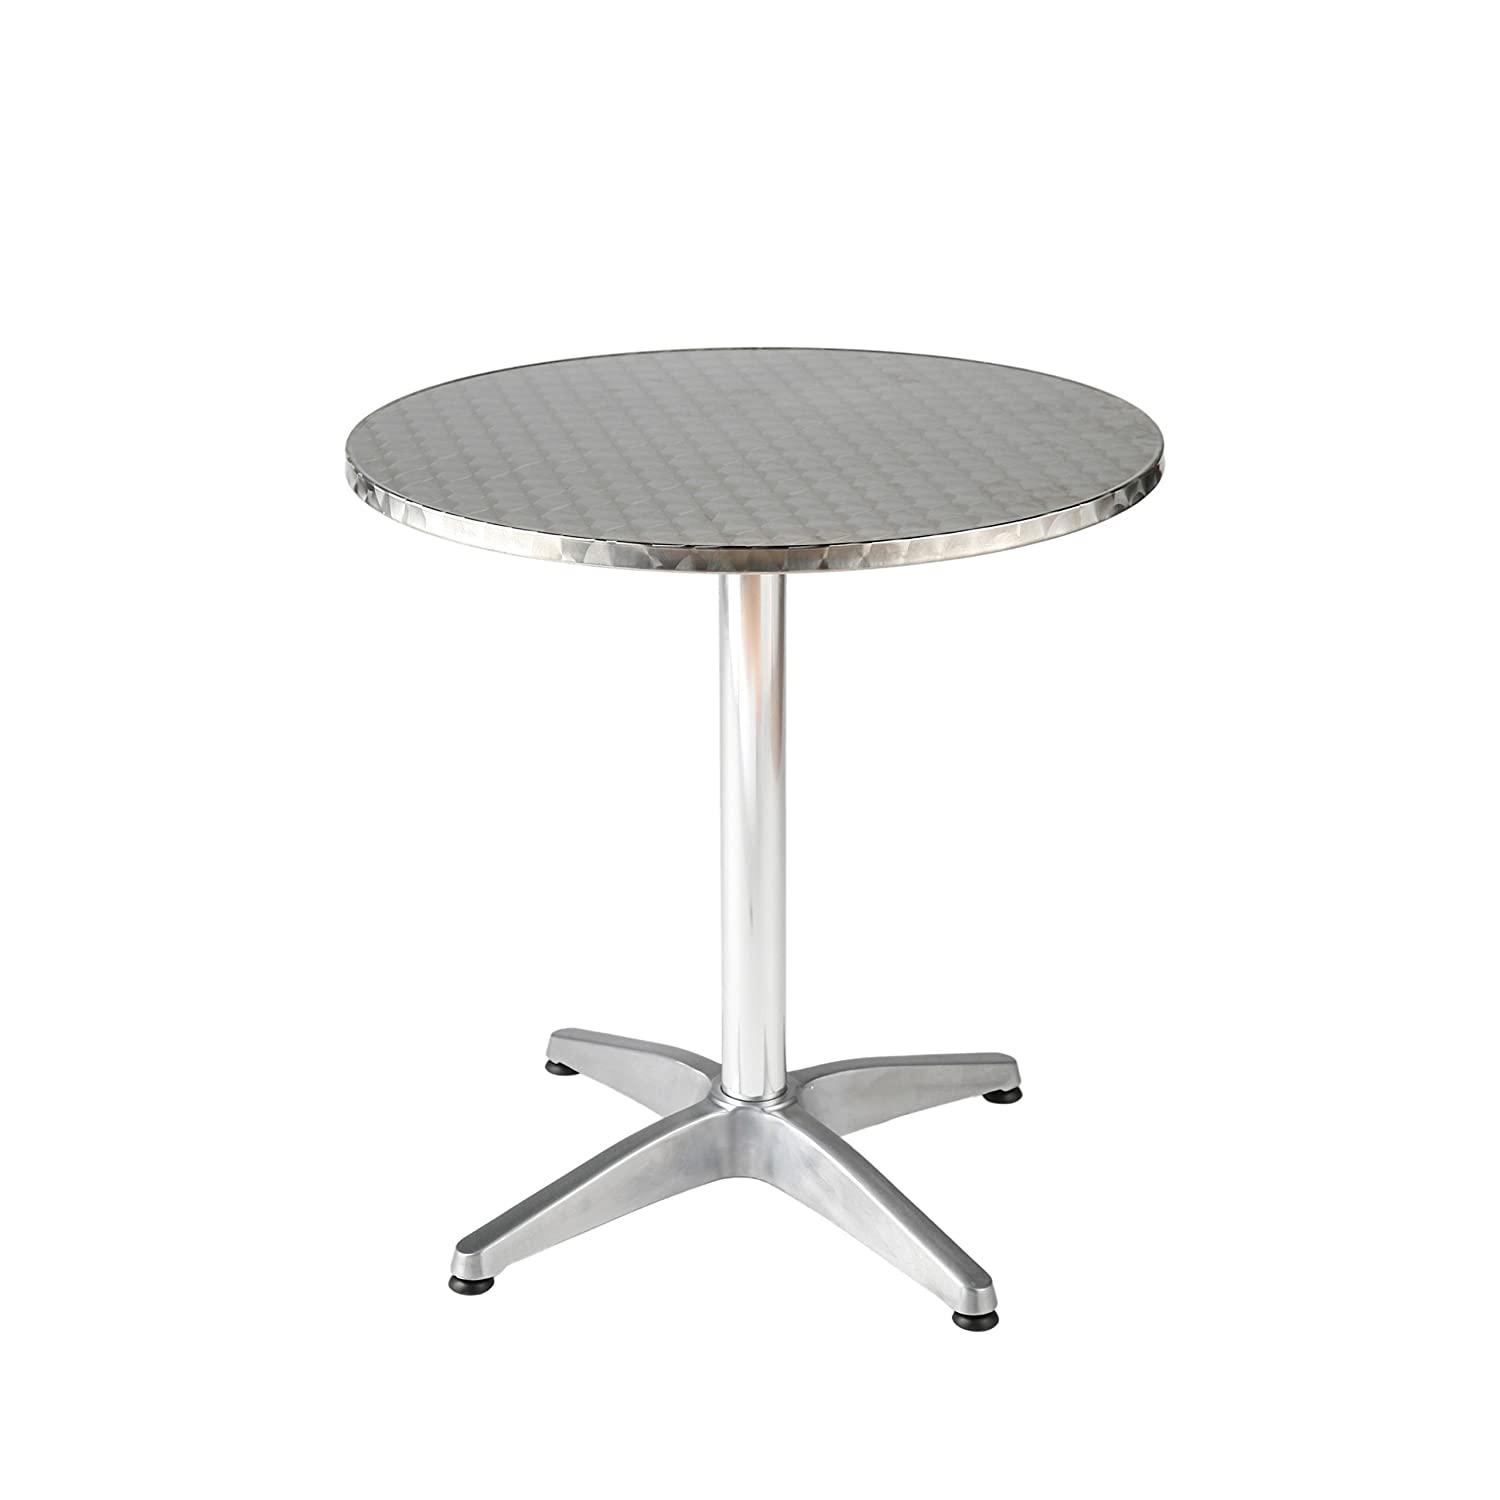 Amazon Com Euro Style Allan Round Stainless Steel Top Indoor Outdoor Bistro Table With Aluminum Base 27 5 Inch End Tables Garden Outdoor